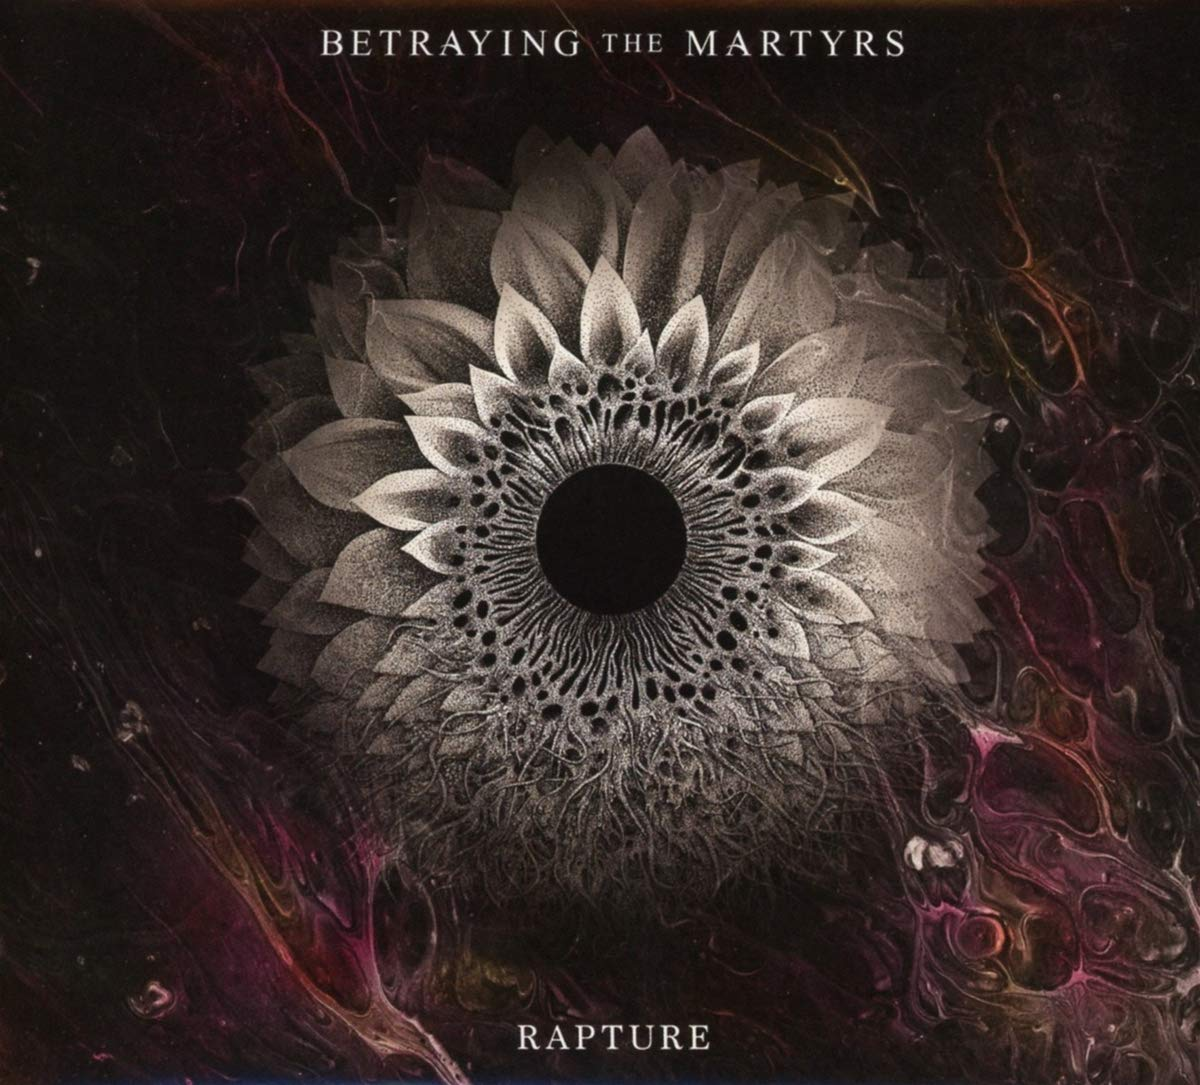 THE GRATUIT MARTYRS BETRAYING TÉLÉCHARGER